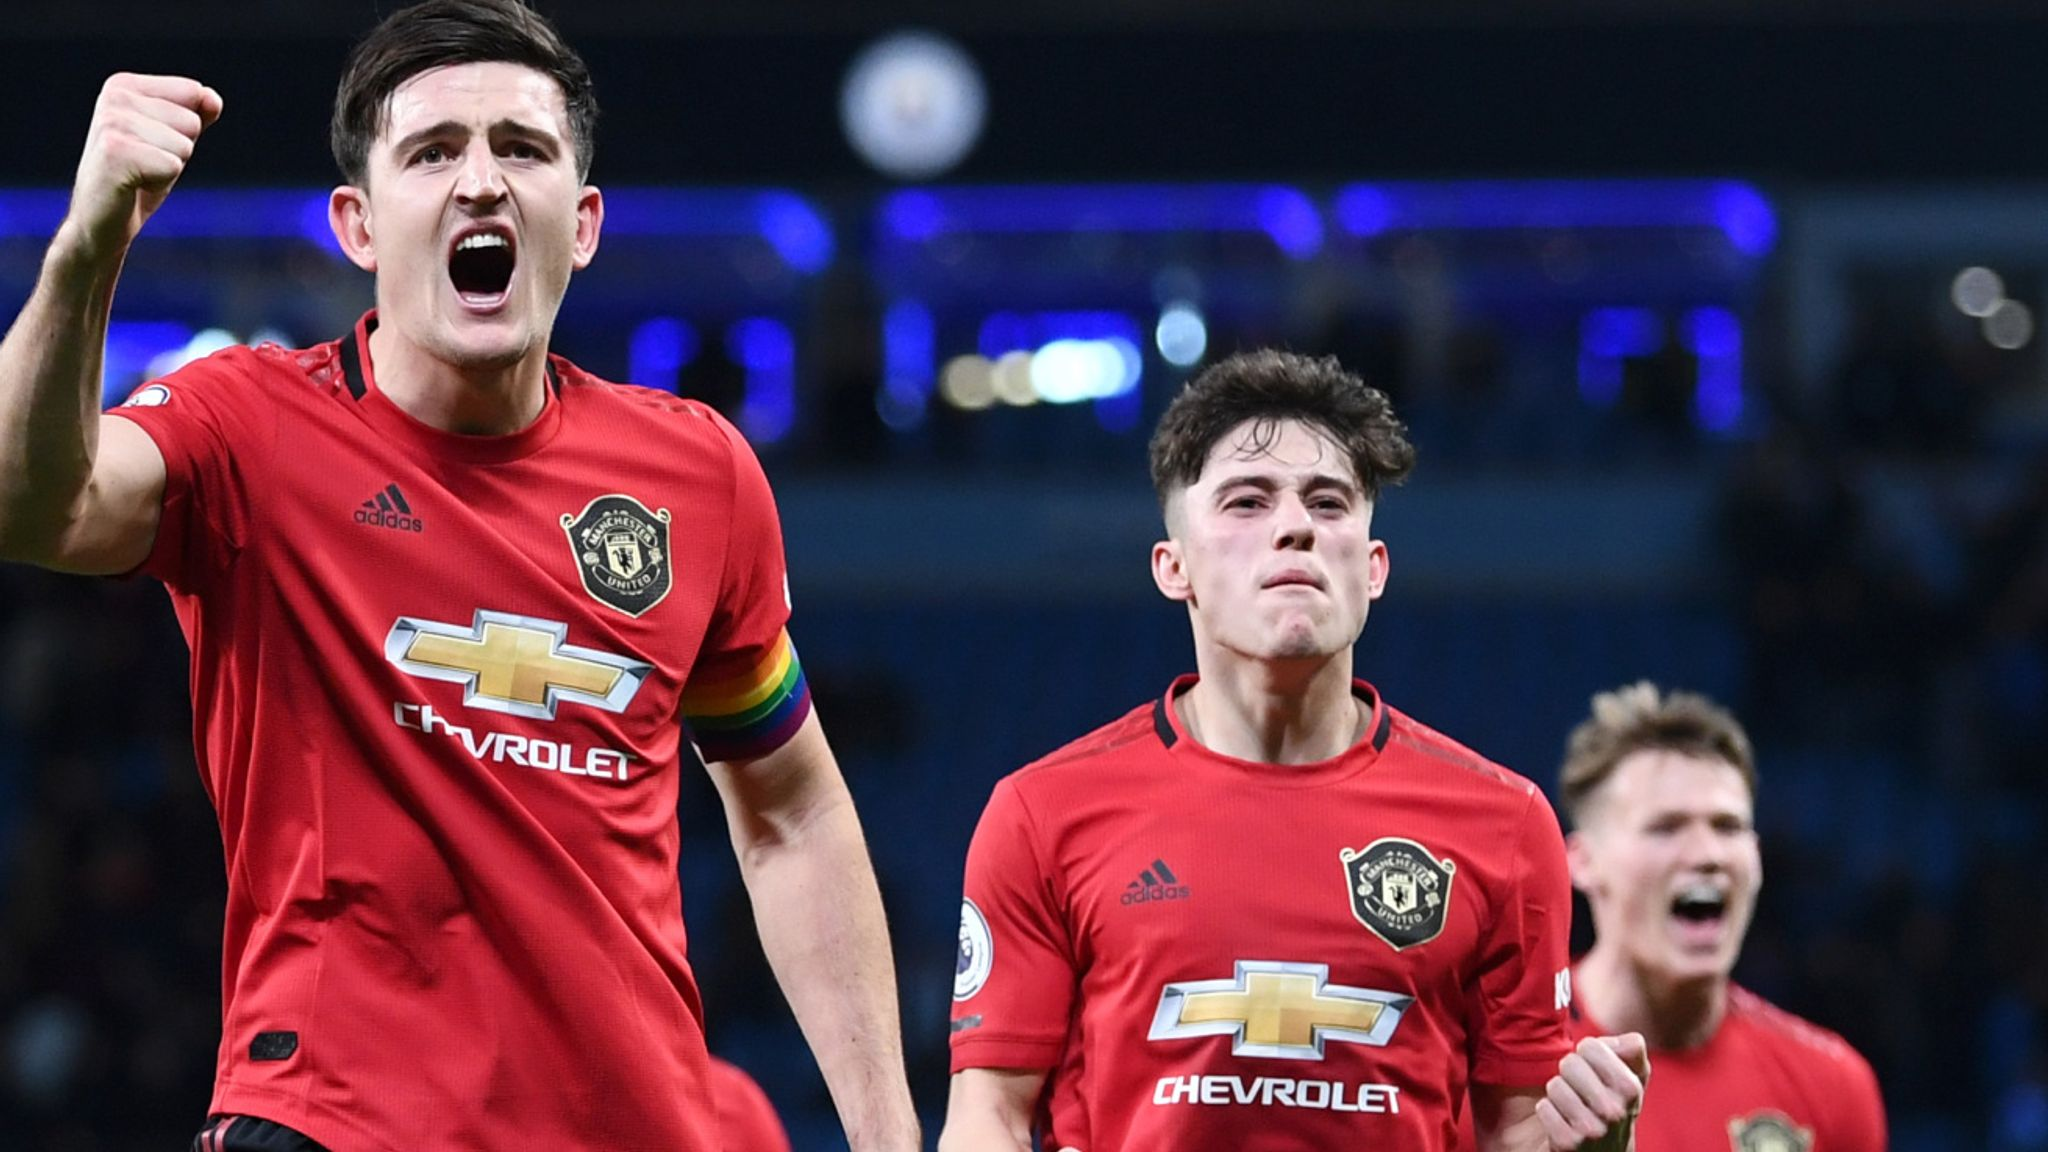 manchester city 1 2 manchester united player ratings football news sky sports manchester united player ratings